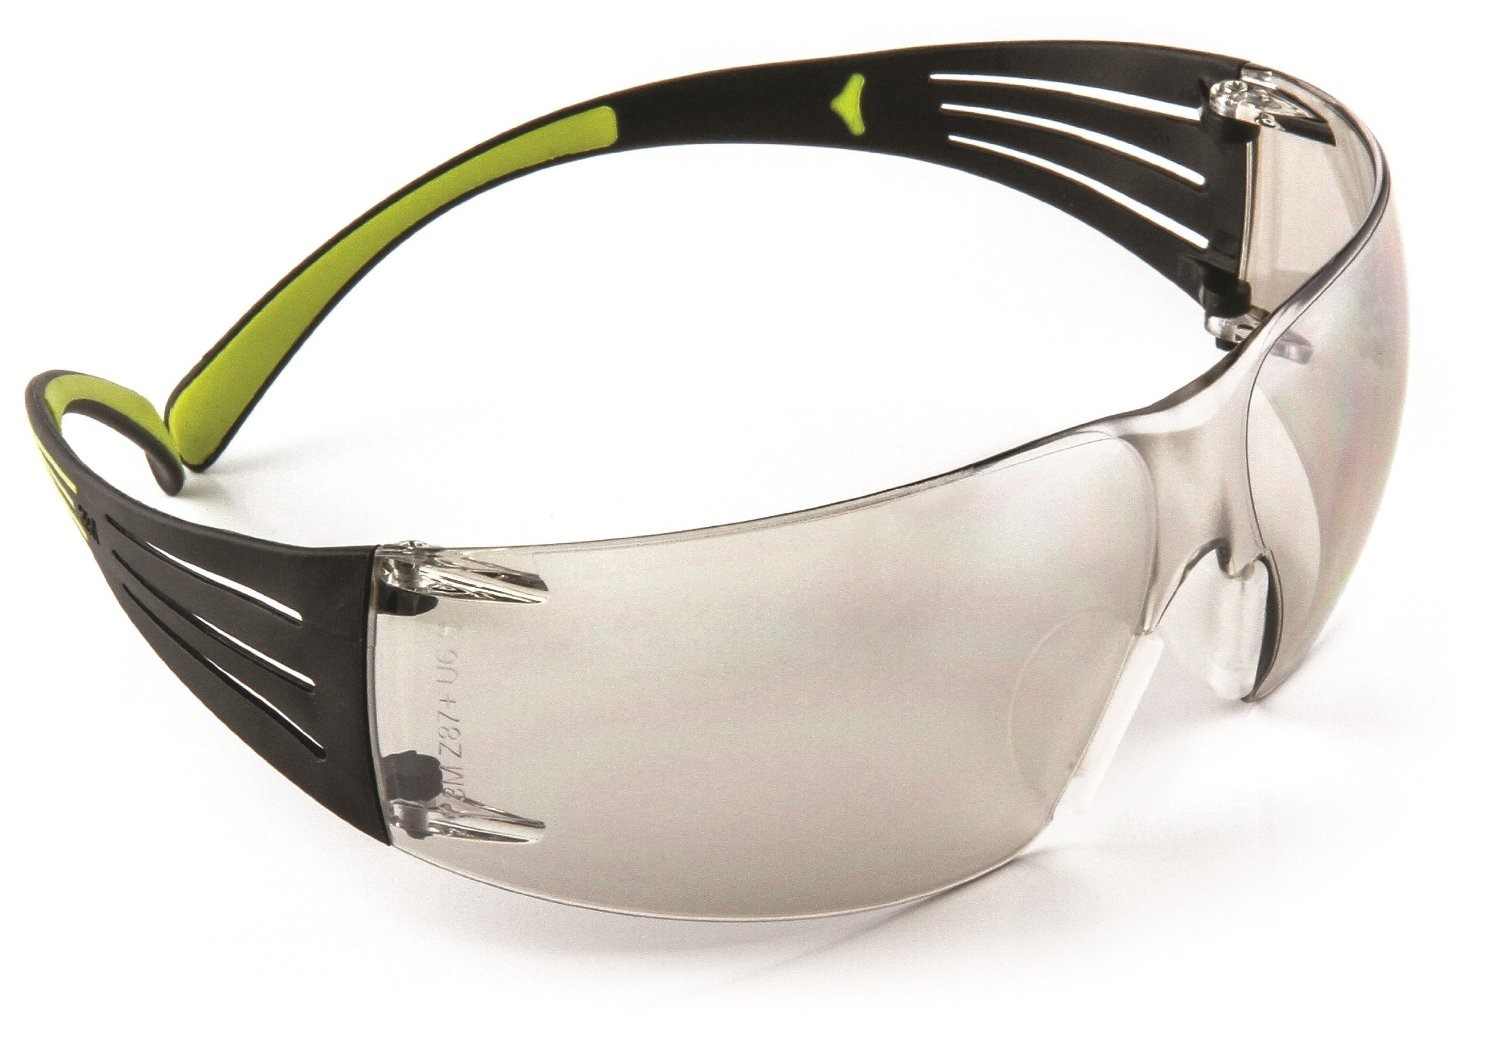 3M SECUREFIT EYEWEAR CLEAR ANTI FOG - SF401AF